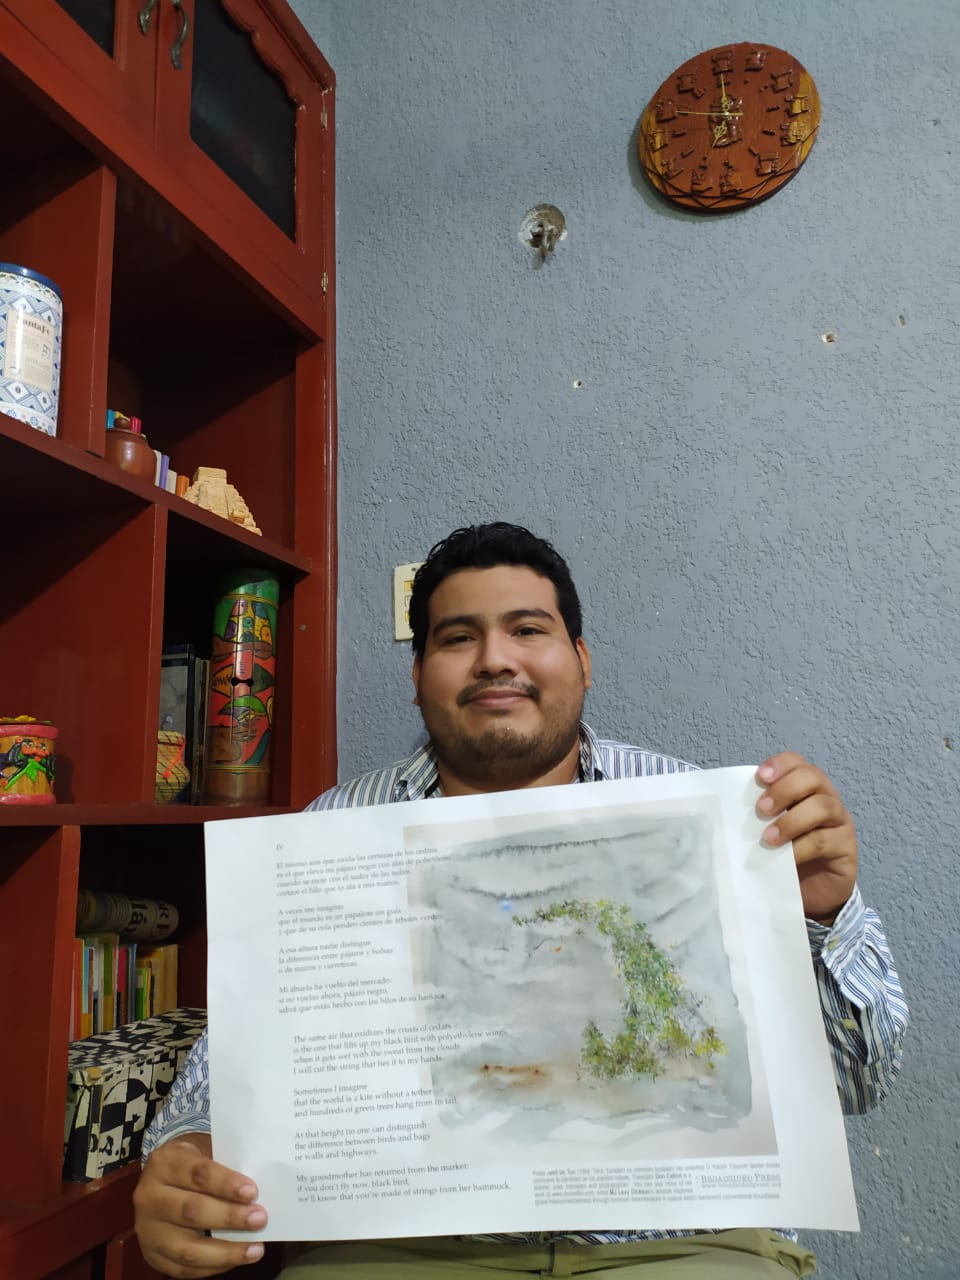 Poet holding up larger print out of Broadside right below his head, sitting next to red shelf and smiling.